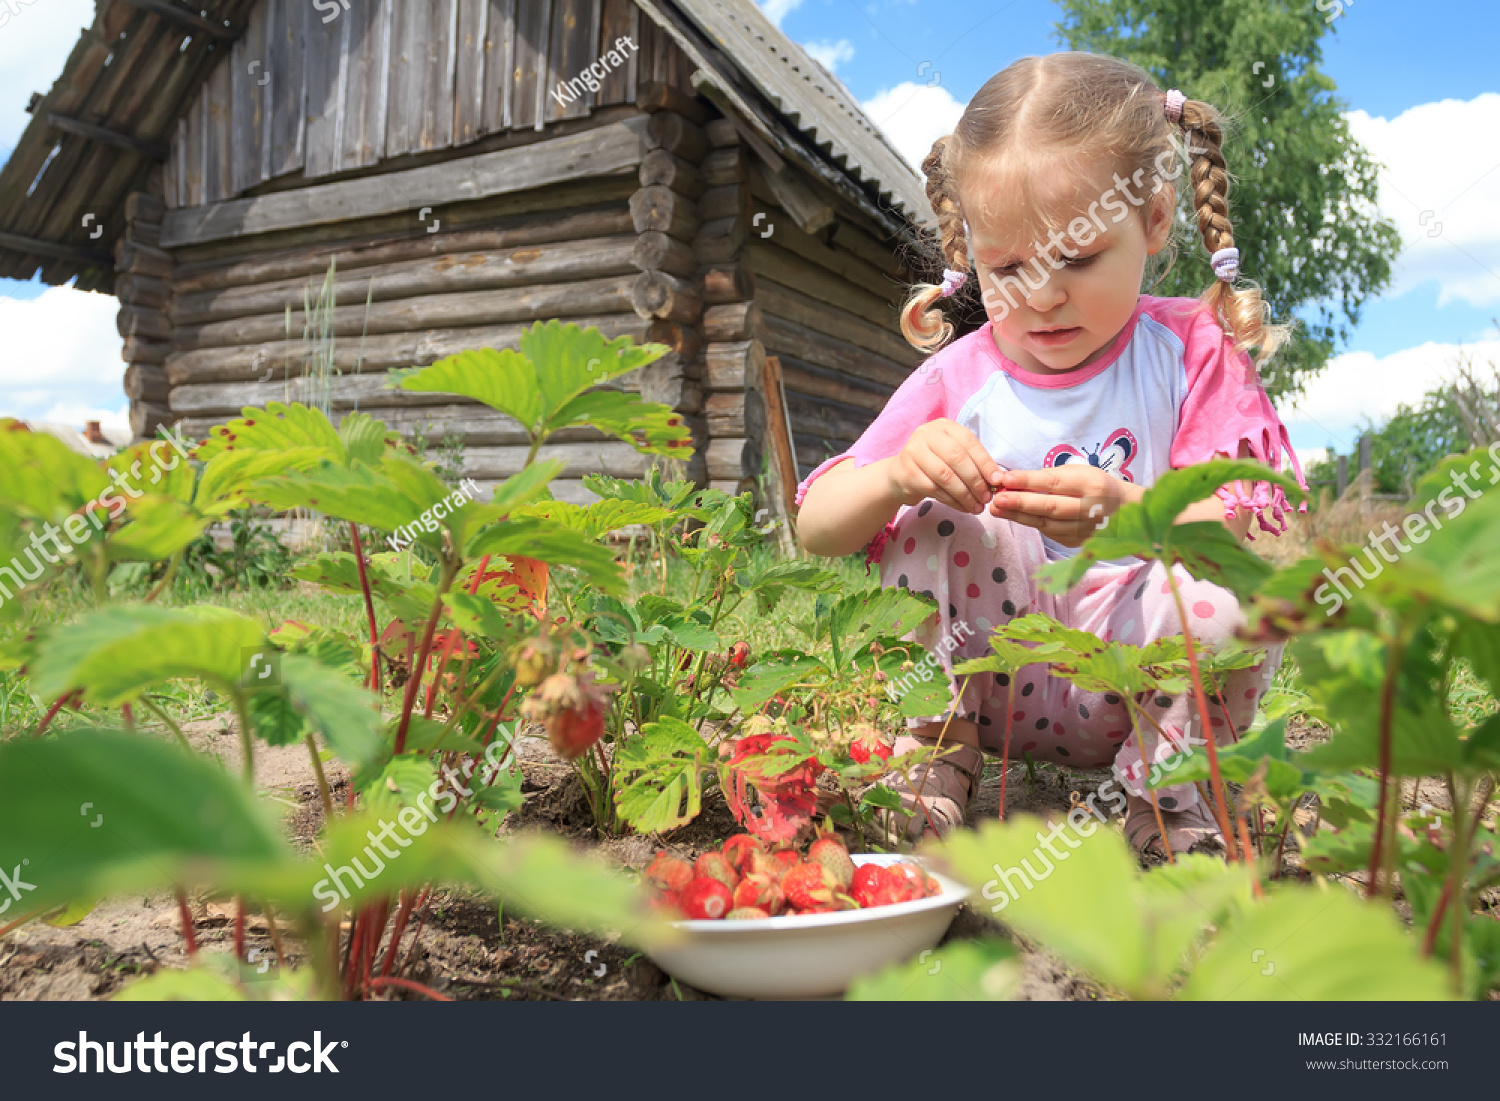 Preschooler Blonde Girl Is Gathering Home Grown Garden